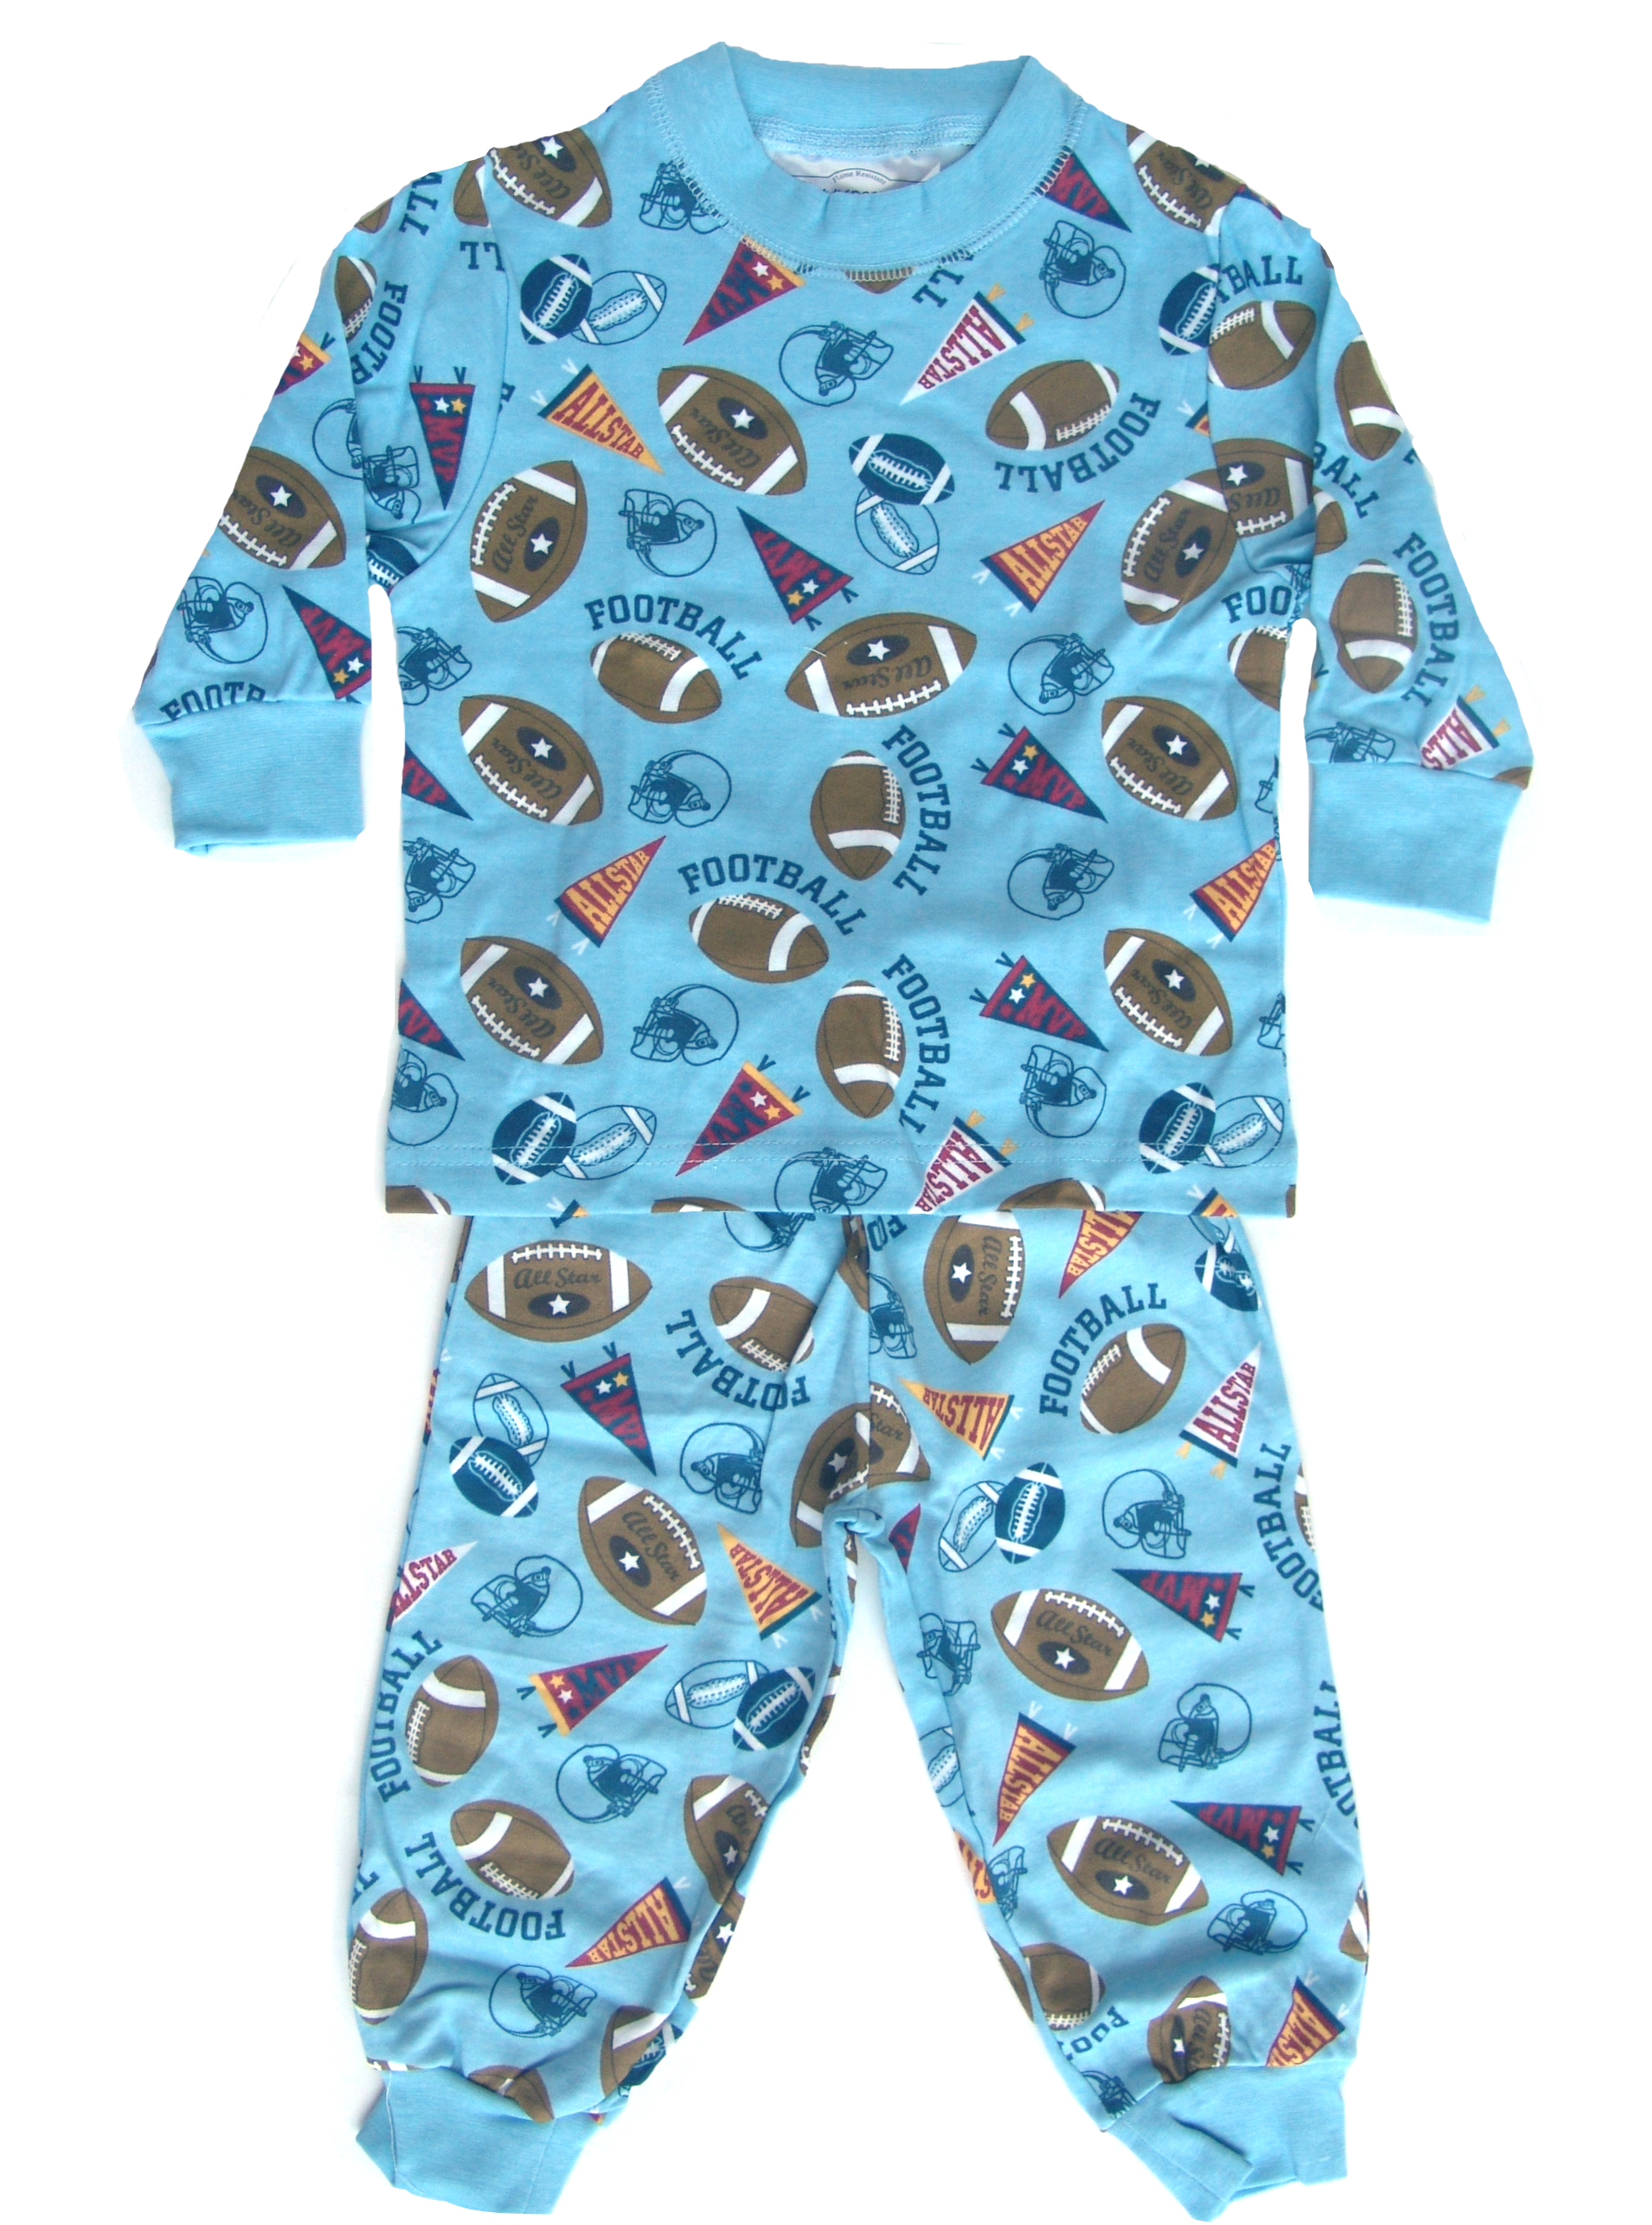 We have great boys pajama sets and more, with Free shipping available!toddler boys pajamas at affordable prices. We have great boys pajama sets and more, with Free Shipping available! Gift Cards. GR8 Gifts 4 Cool Kids. Returns Ship Free. Every Day on Every Order. Refer a .